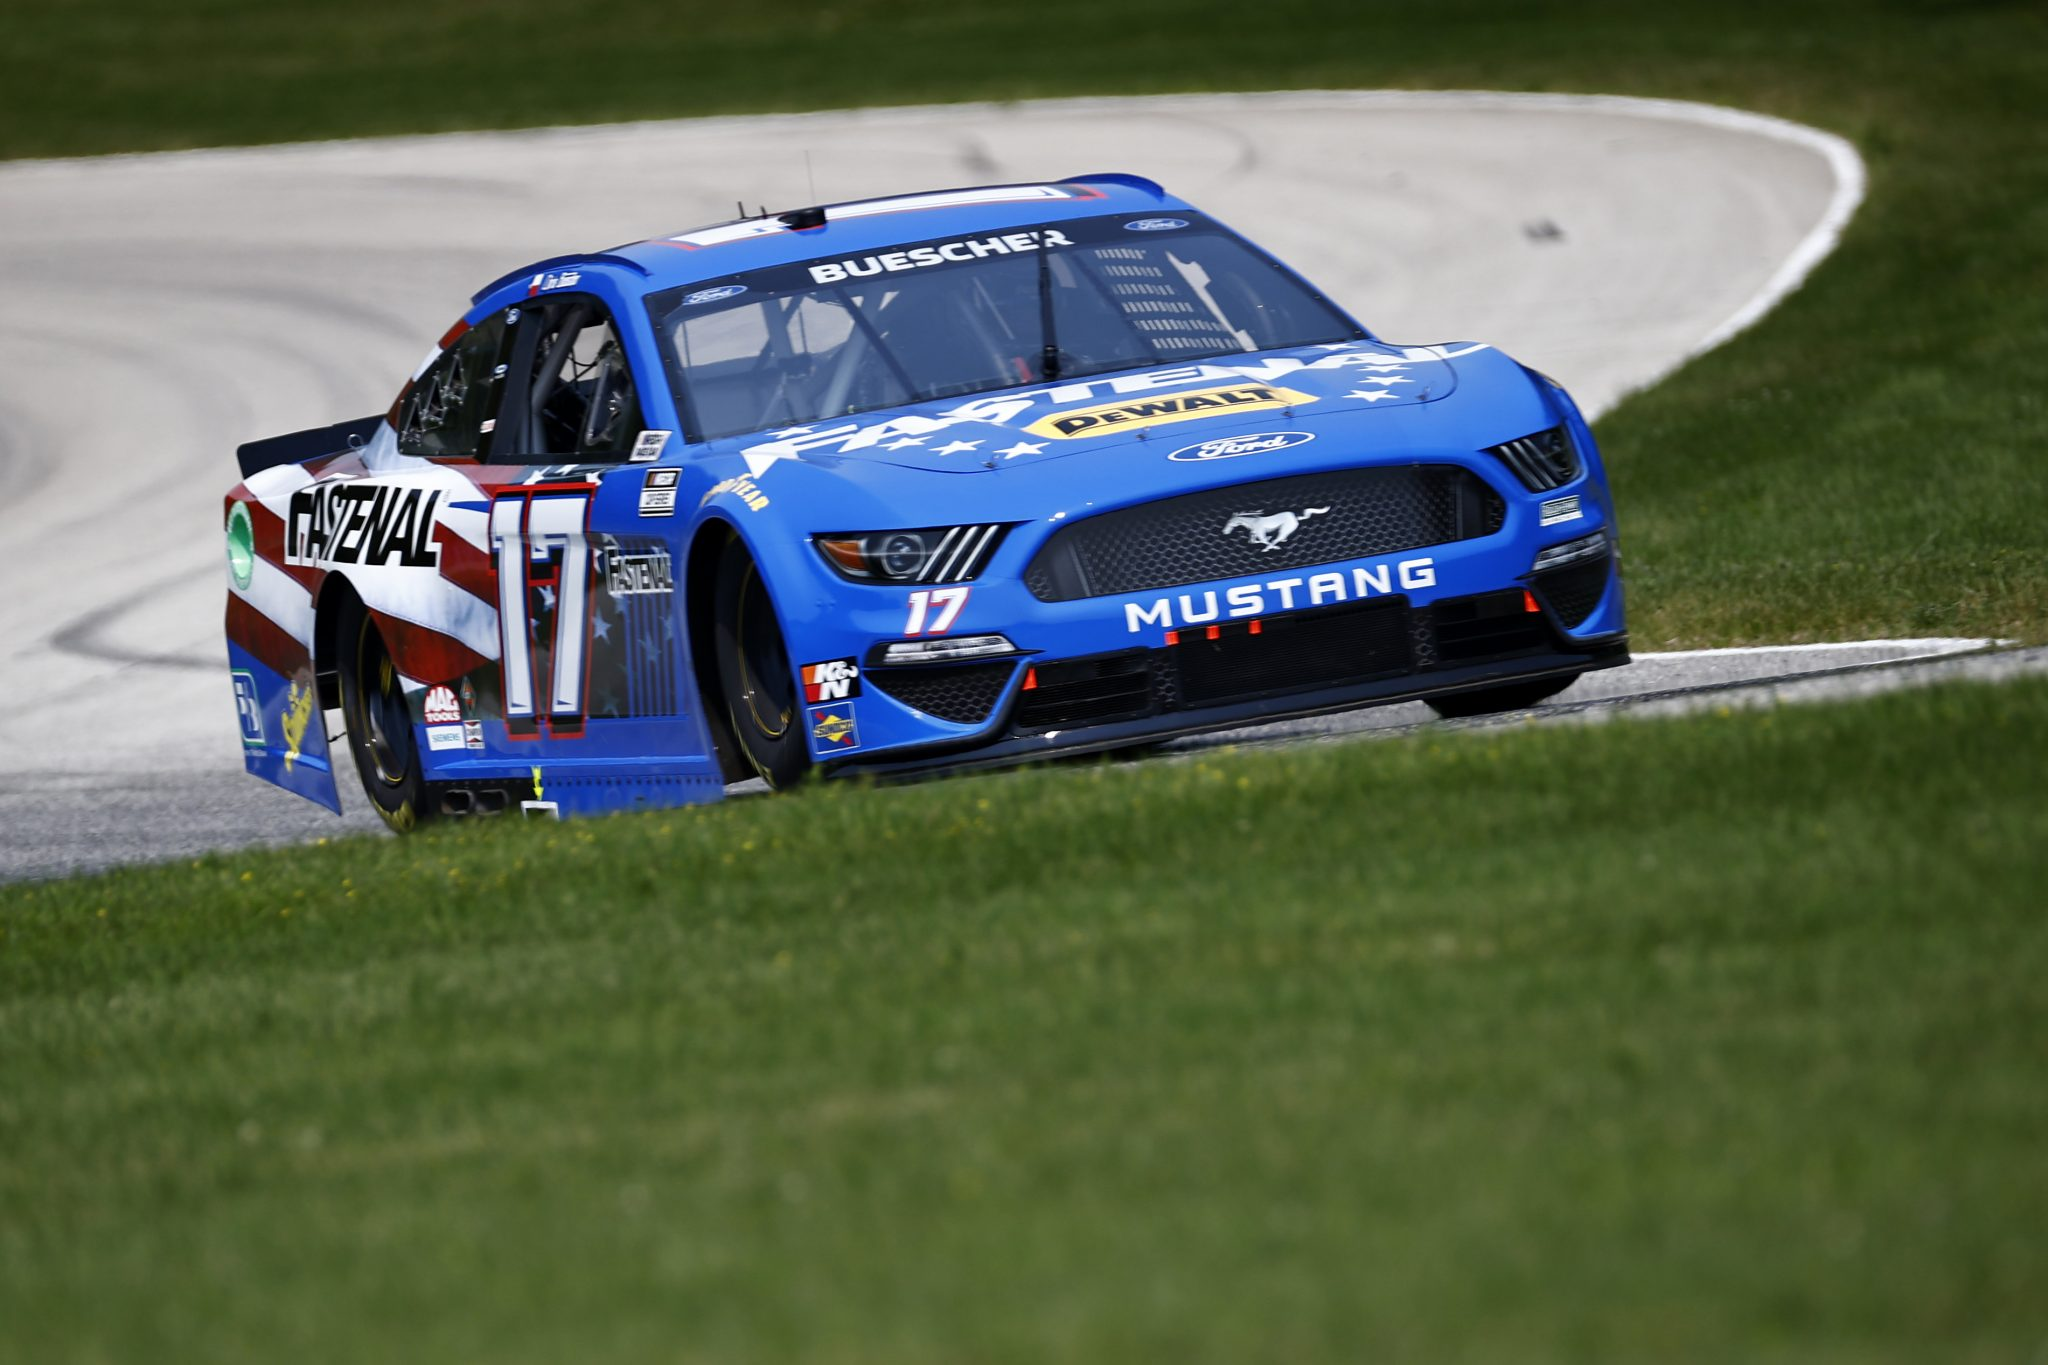 ELKHART LAKE, WISCONSIN - JULY 03: Chris Buescher, driver of the #17 Fastenal Ford, drives during practice for the NASCAR Cup Series Jockey Made in America 250 Presented by Kwik Trip at Road America on July 03, 2021 in Elkhart Lake, Wisconsin. (Photo by Jared C. Tilton/Getty Images) | Getty Images